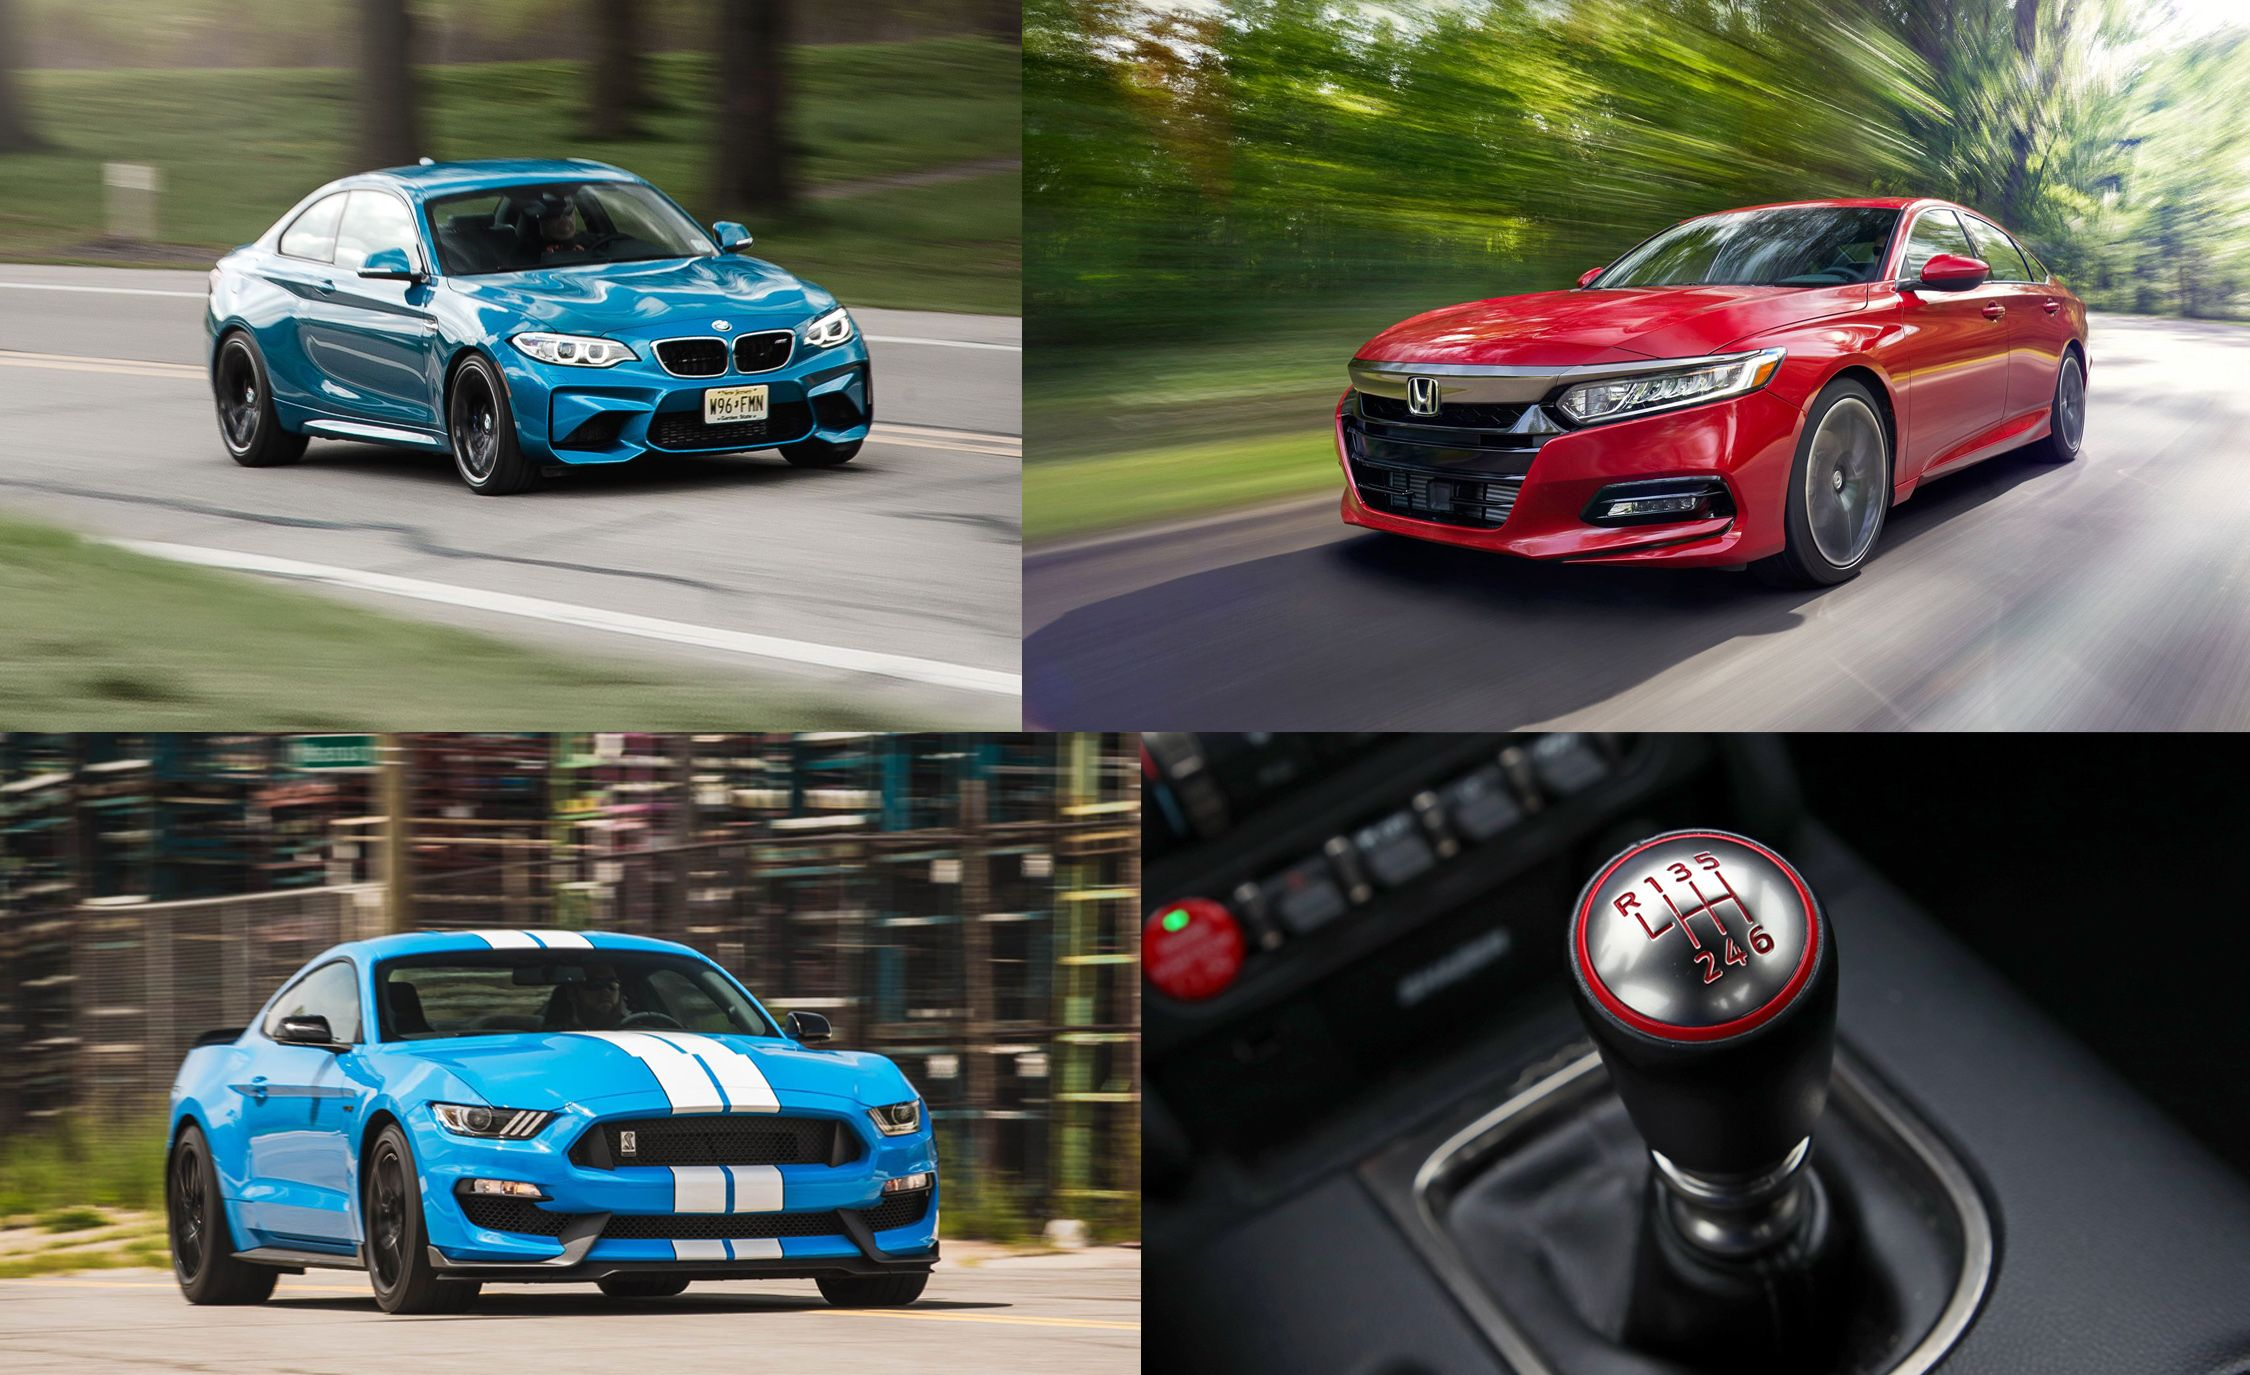 48 new cars you can buy with a manual transmission in 2018 rh caranddriver com used manual transmission cars for sale near me used manual transmission cars for sale in nj